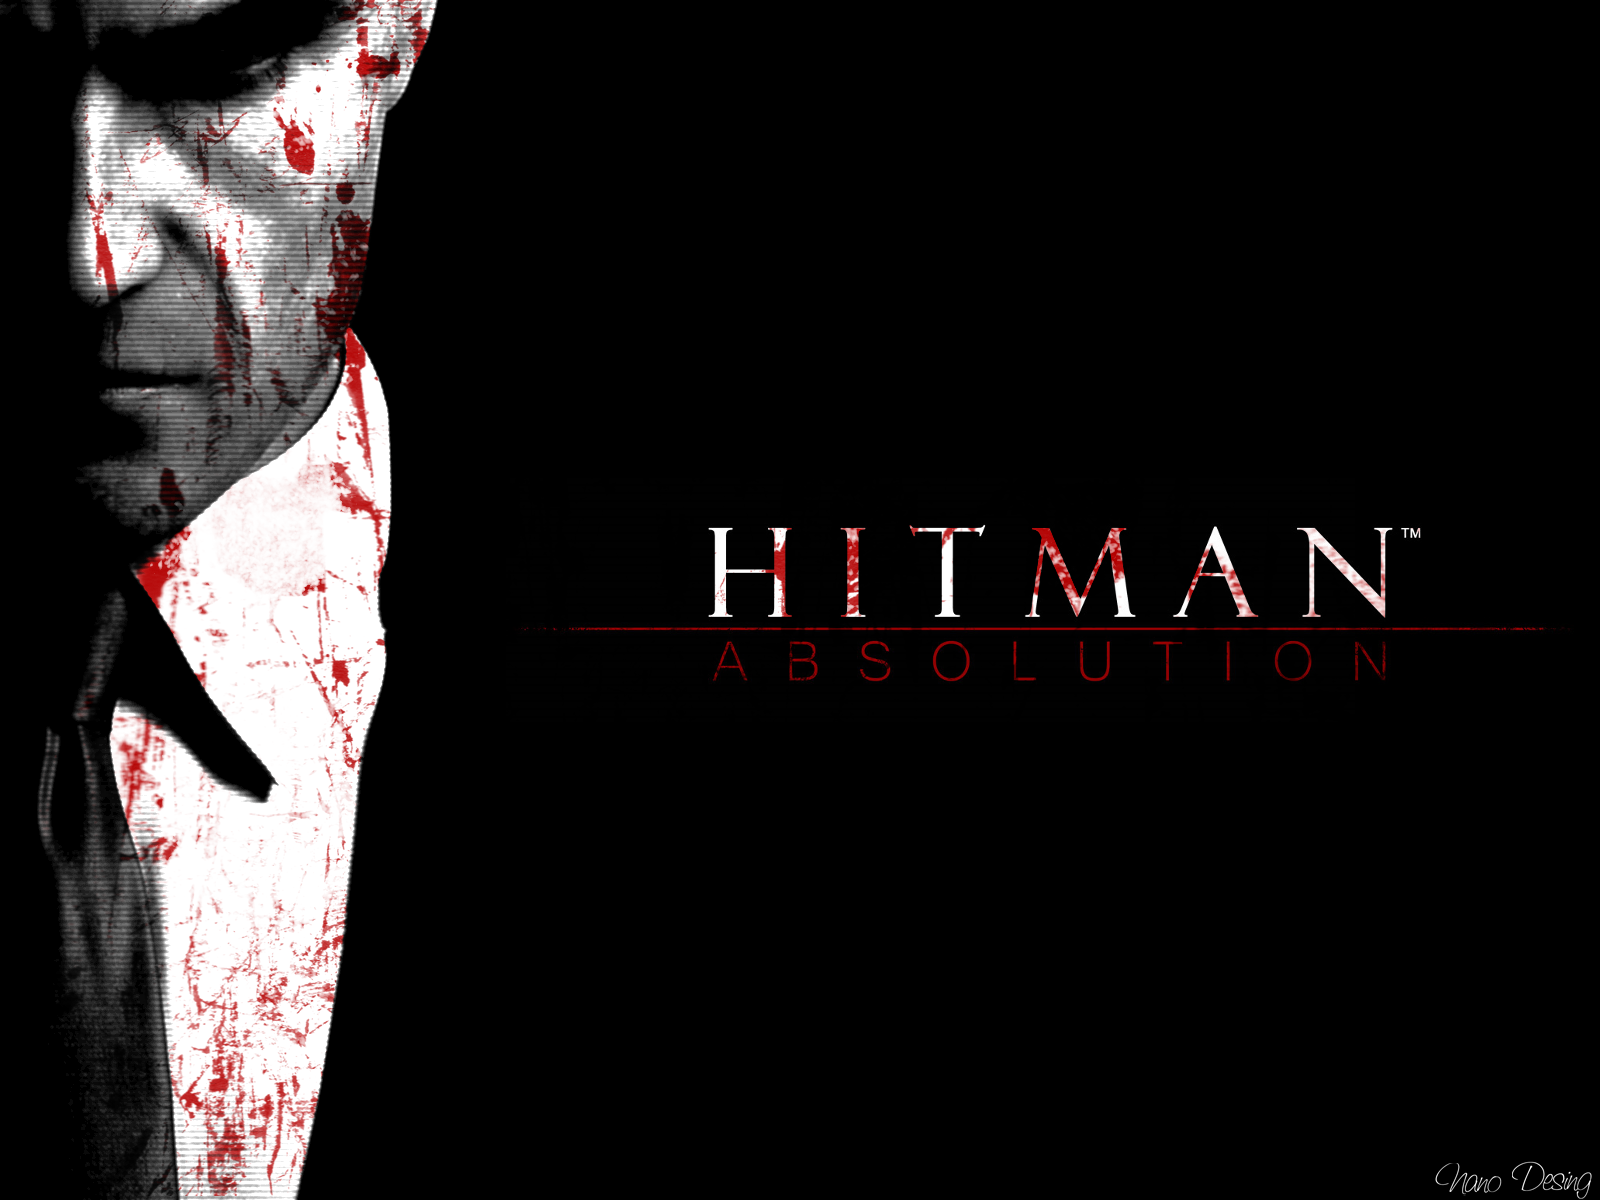 Hitman wallpaper full hd wallpapersafari 1600x1200 video game hitman wallpaper hd 2730 hd game wallpaper buycottarizona Gallery